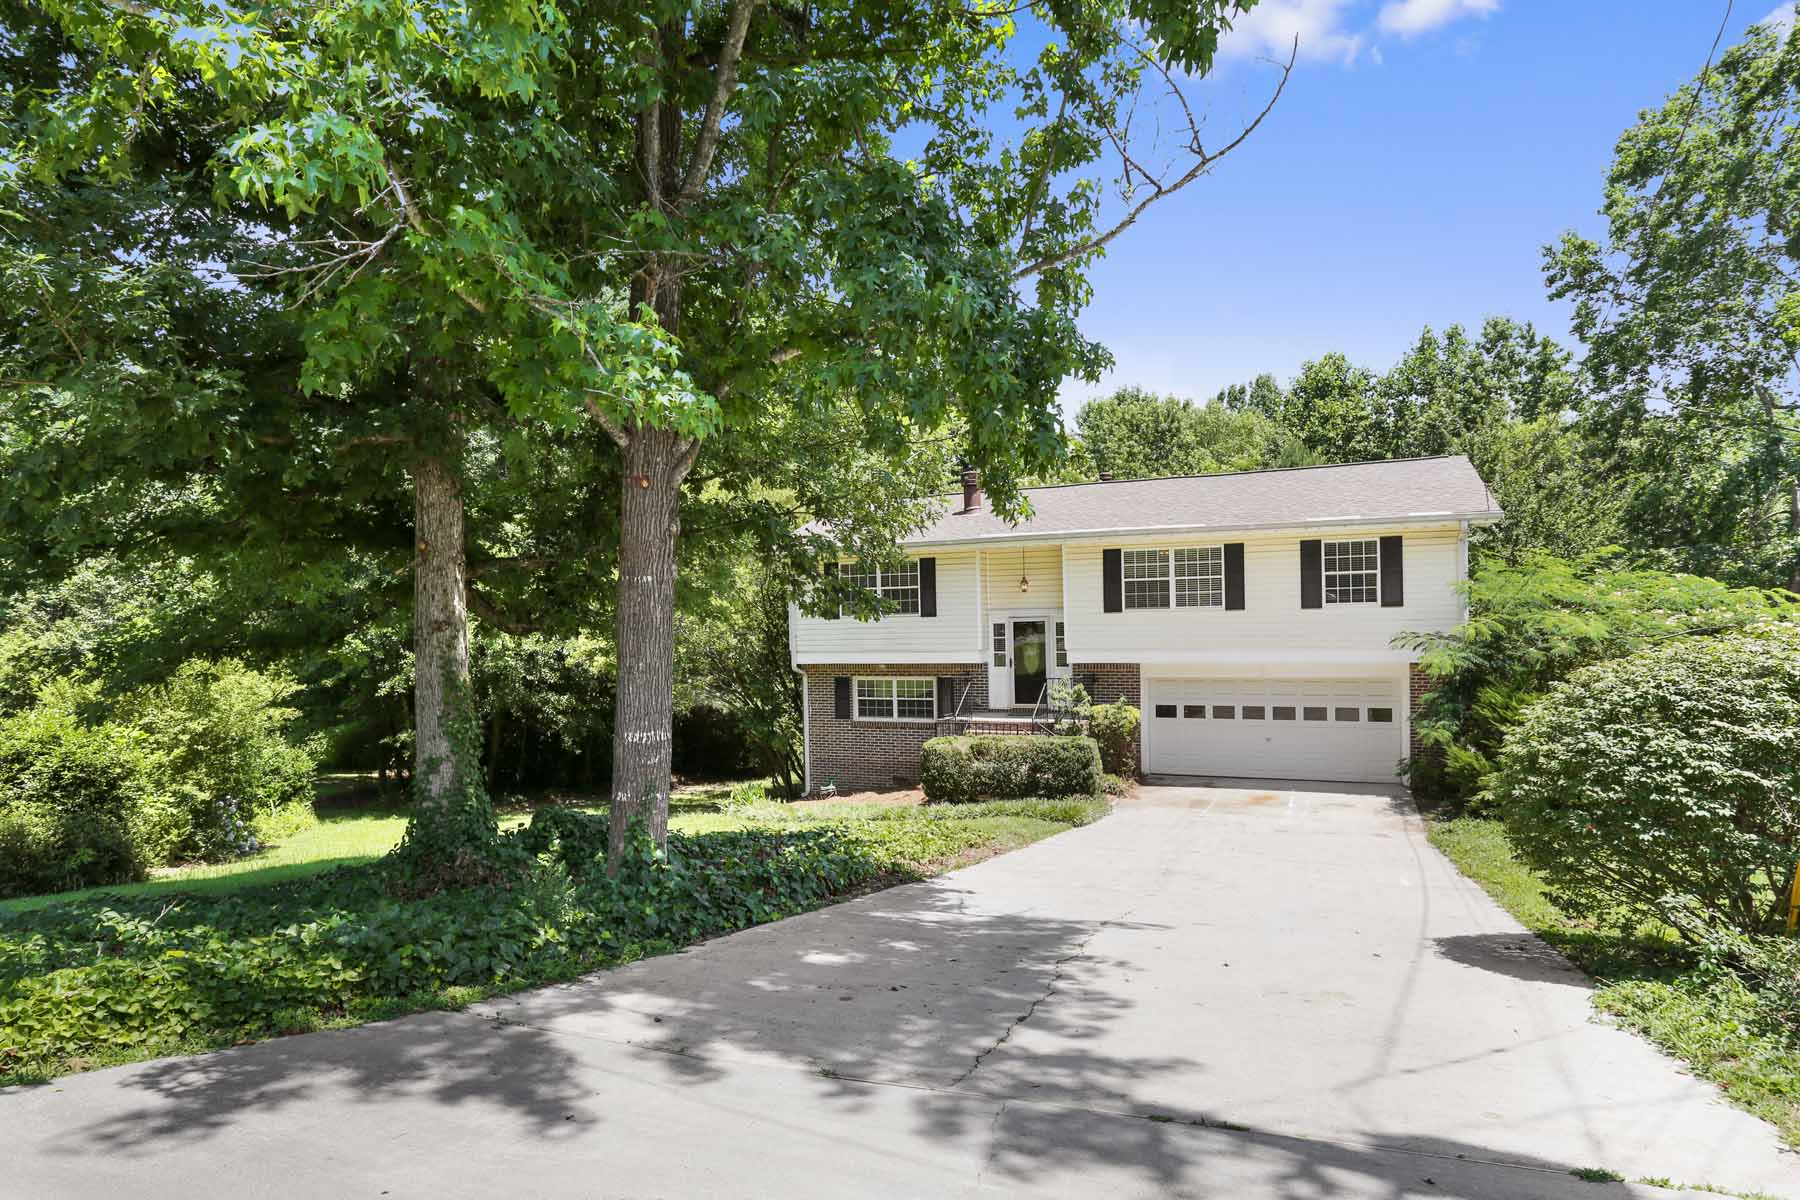 獨棟家庭住宅 為 出售 在 Spacious Home On .62 Acre Cul-De-Sac Lot In Popular Swim Tennis Neighborhood! 3812 Abby Court Atlanta, 喬治亞州, 30360 美國